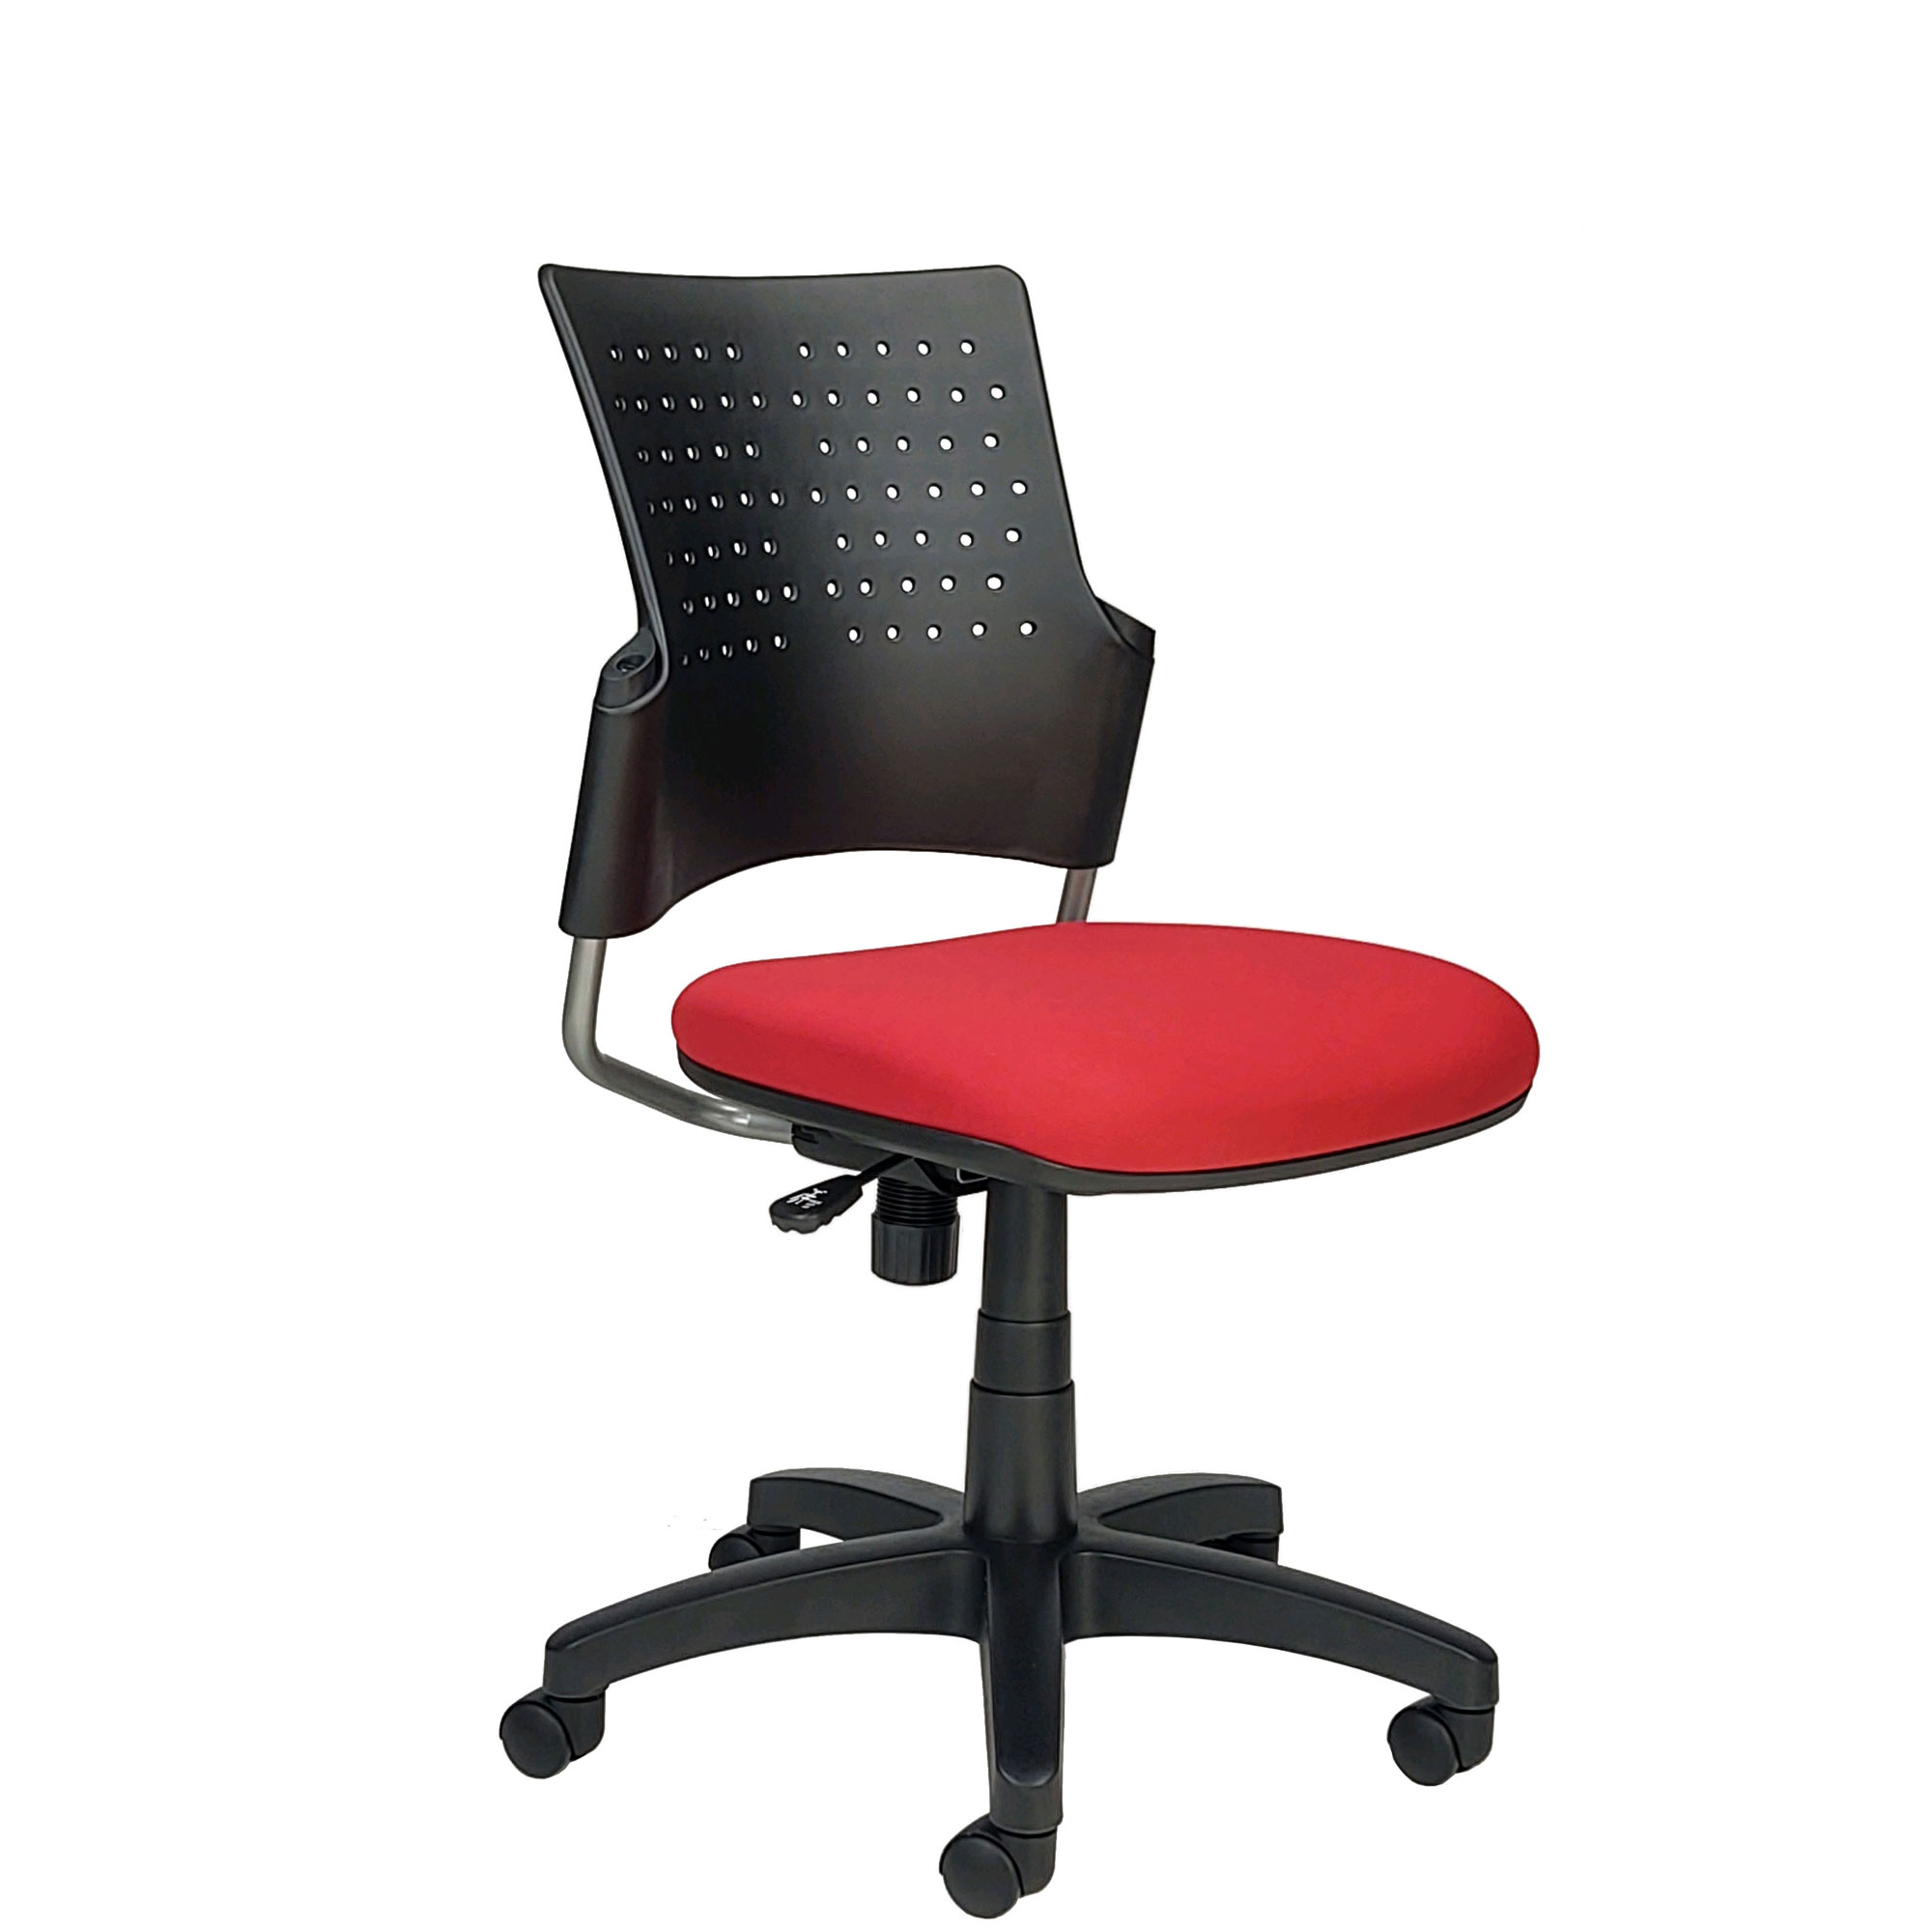 """Snap"" Chair For Bedroom Office"